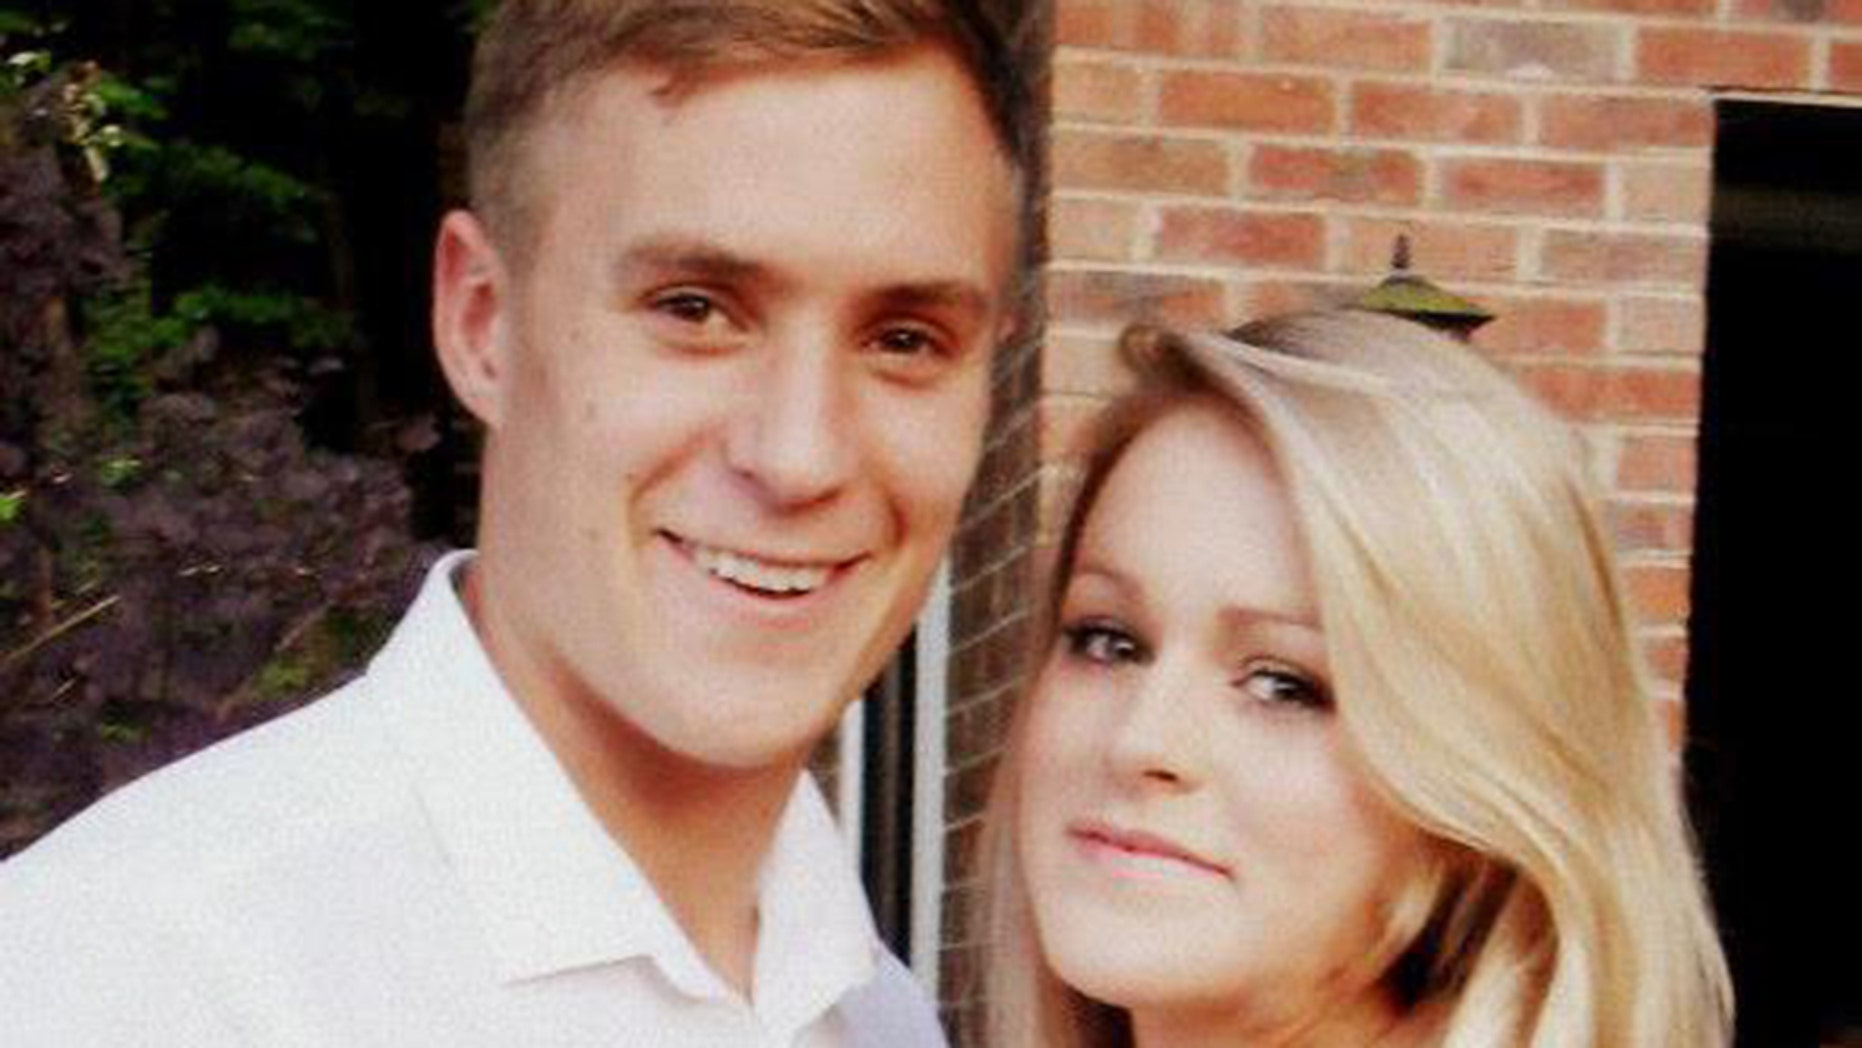 """Jason Francis, 29, died after he was run over by a car in Australia. His longtime girlfriend, Alice Robinson, was found dead """"non-suspicious circumstances"""" fewer than 24 hours later, reports say."""